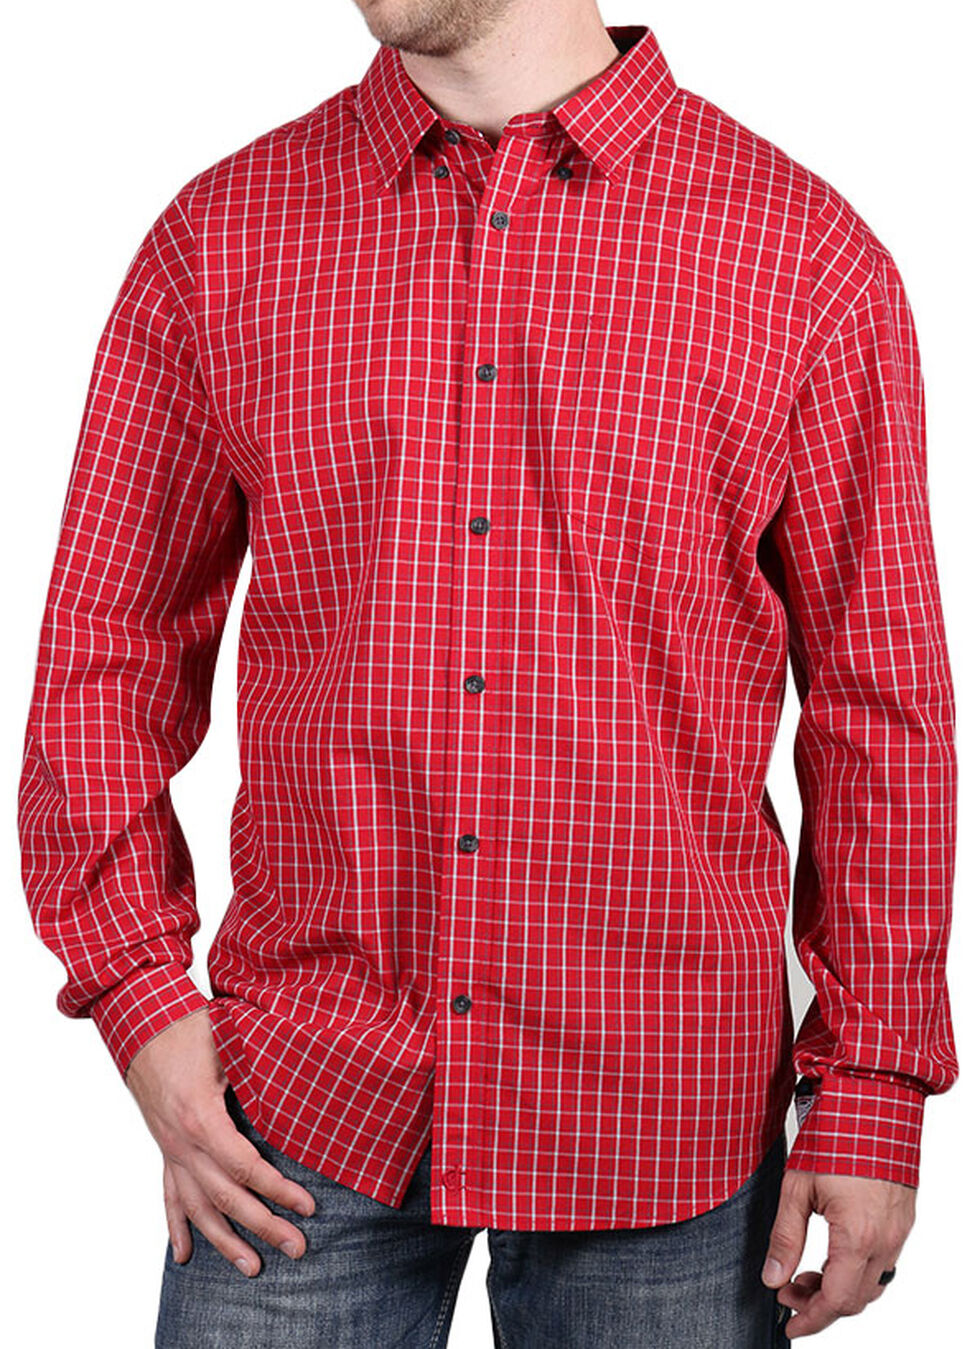 Cody James Core Men's Red Checkered Print Shirt, , hi-res